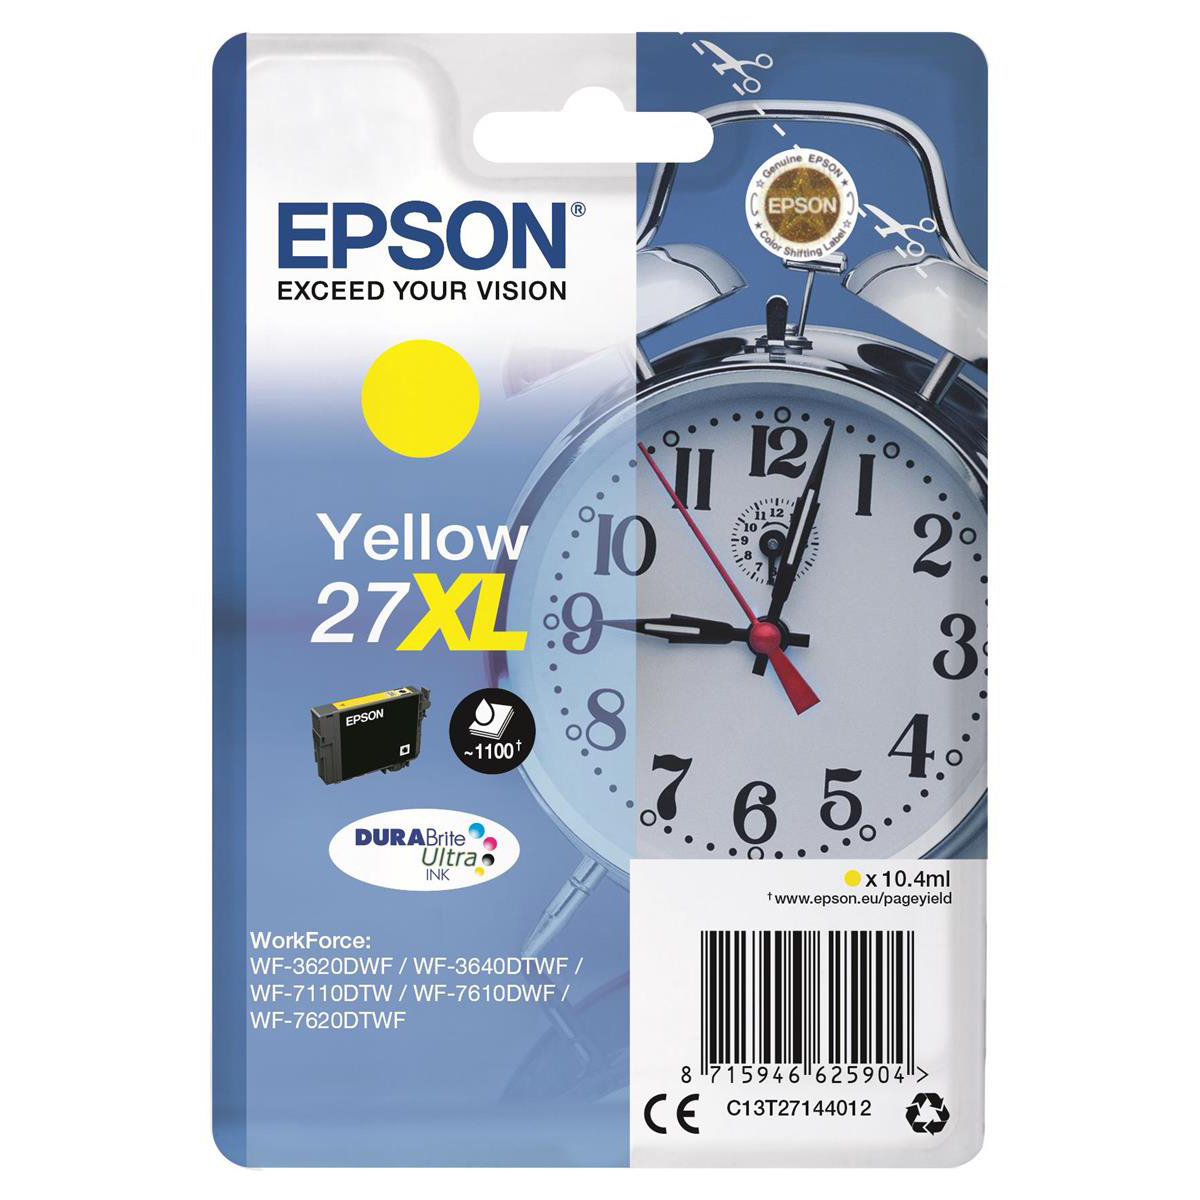 Epson 27XL Inkjet Cartridge Alarm Clock High Yield Page Life 1100pp 10.4ml Yellow Ref C13T27144012